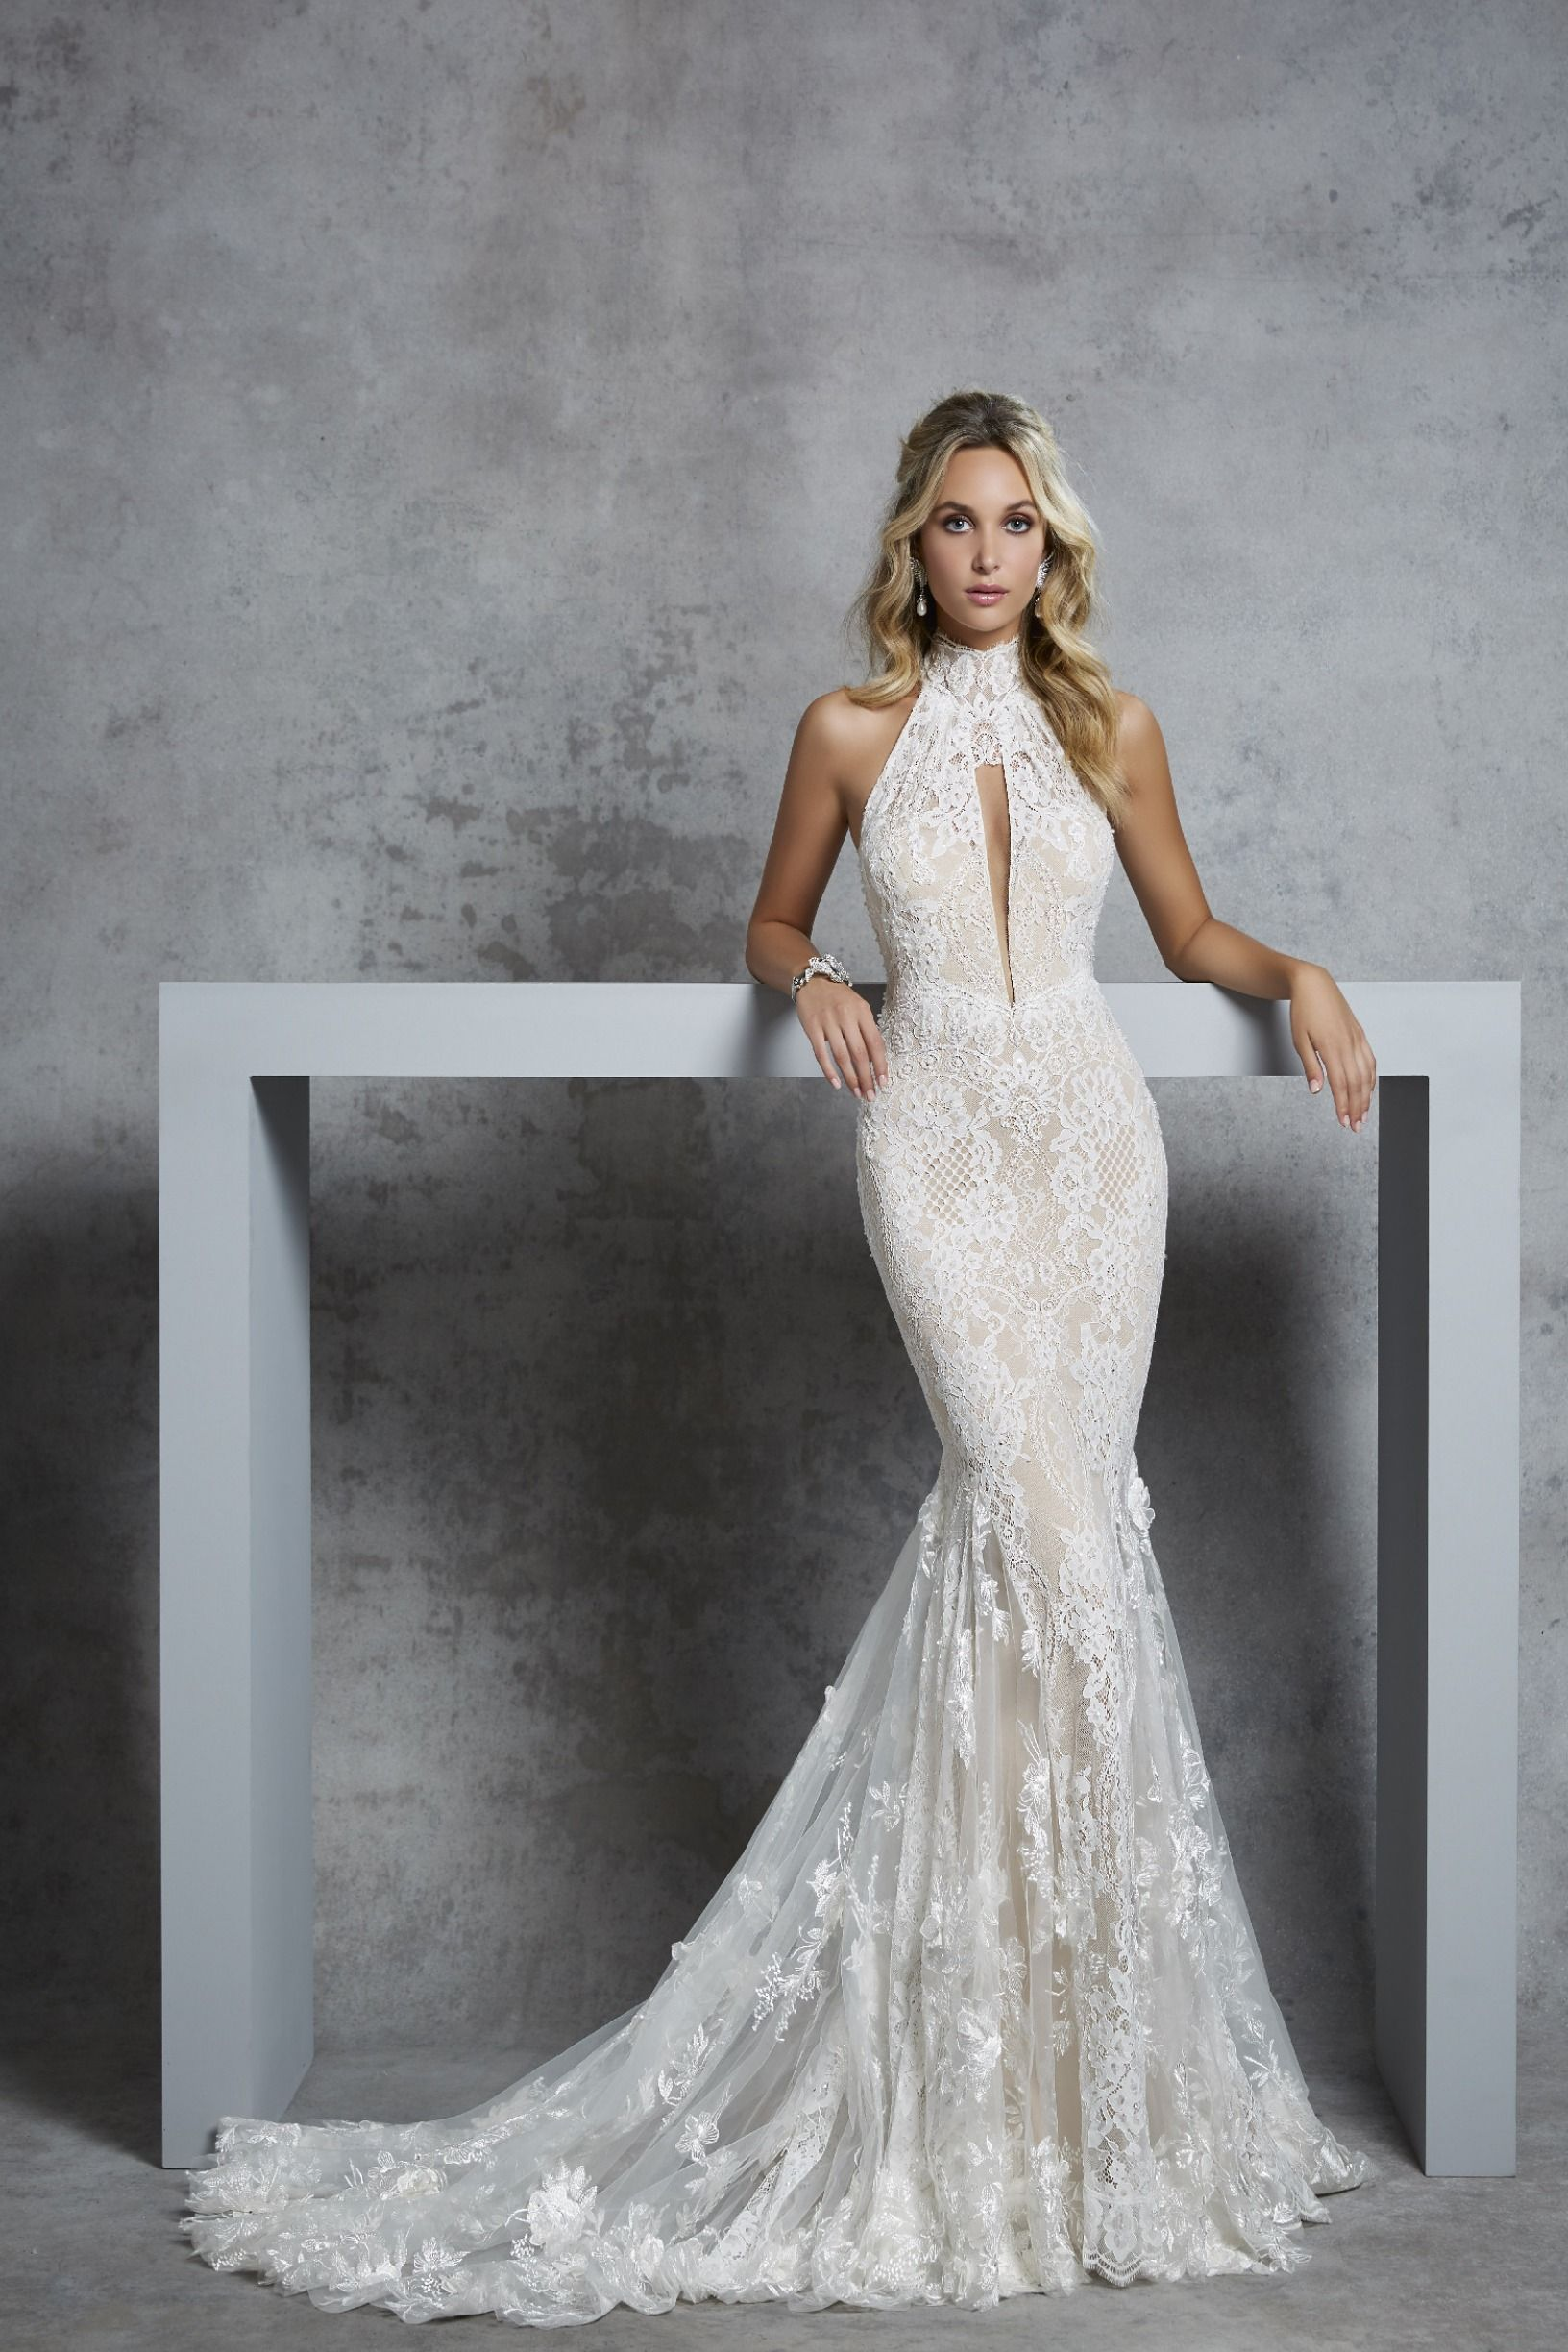 Stunning Embroidered Lace Backless Fit Flare Halter Wedding Dress Mermaid Bridal Gown With O Halter Wedding Dress Bridal Gowns Mermaid Fitted Wedding Dress [ 2448 x 1632 Pixel ]